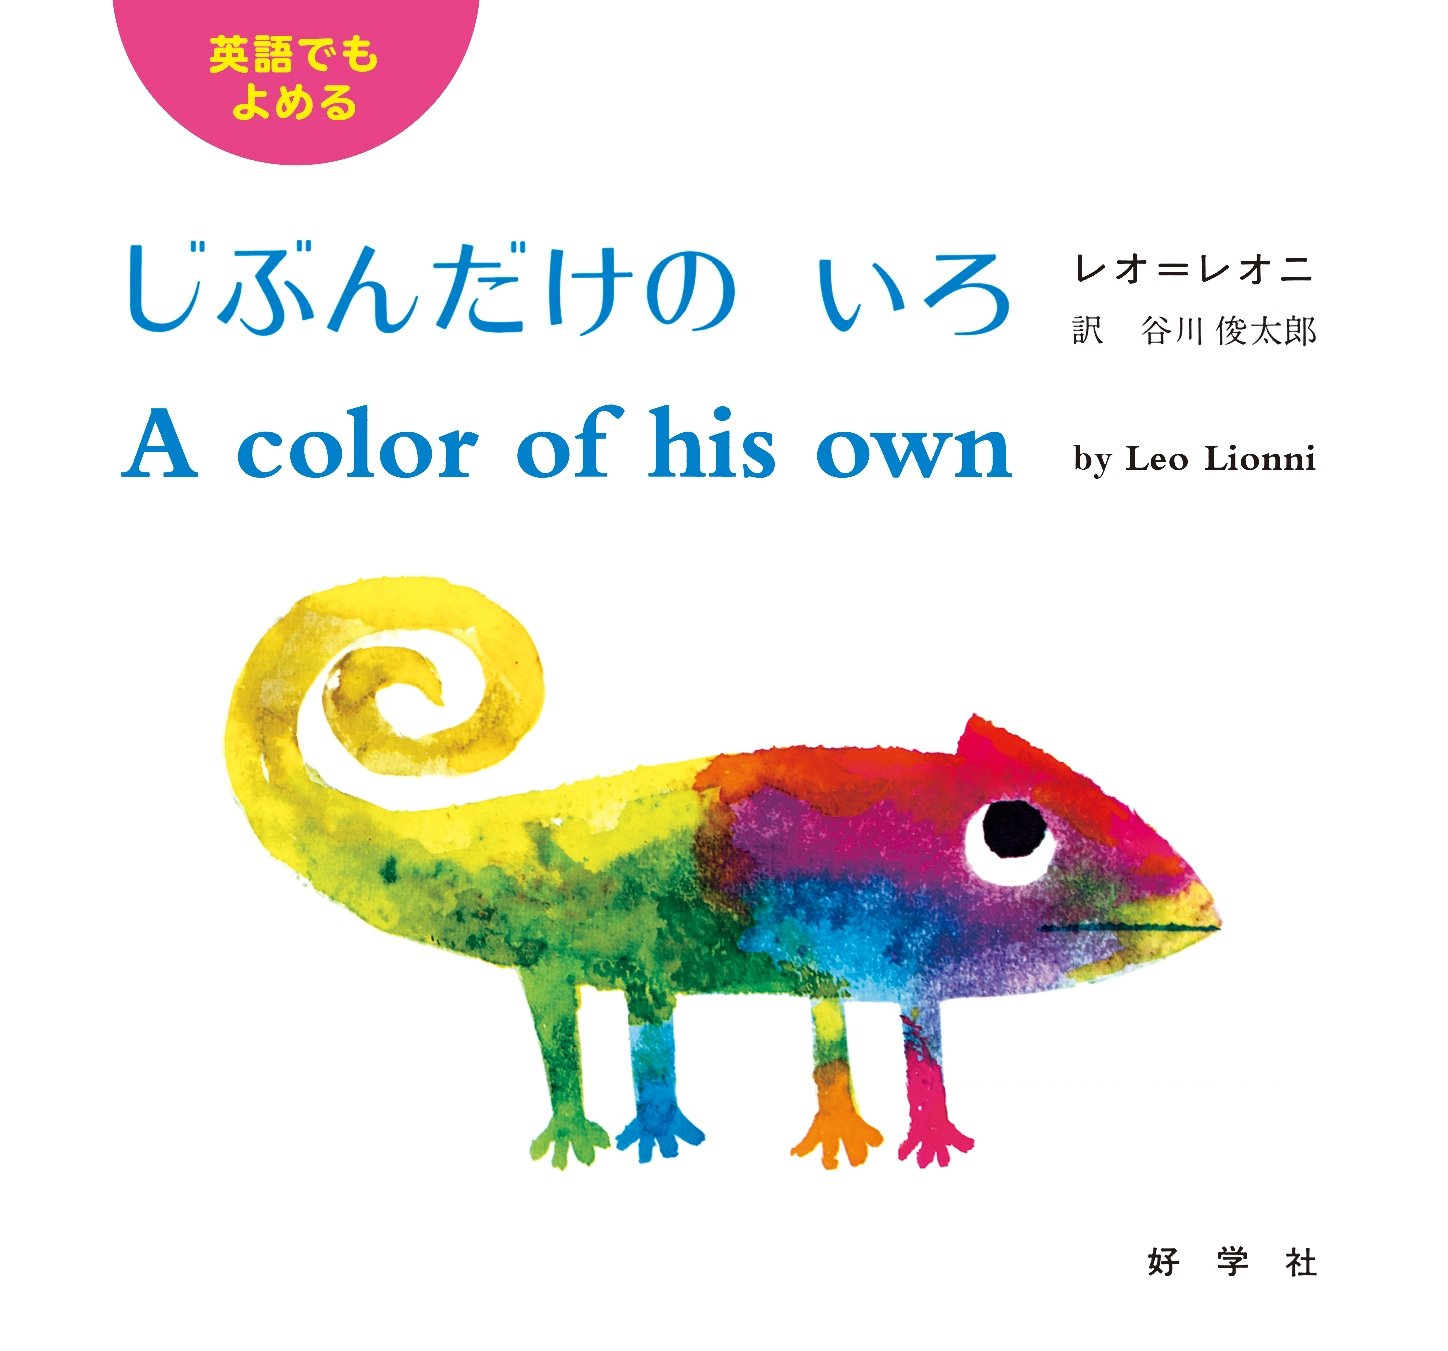 5 Japanese-English Bilingual Books For Babies And Toddlers